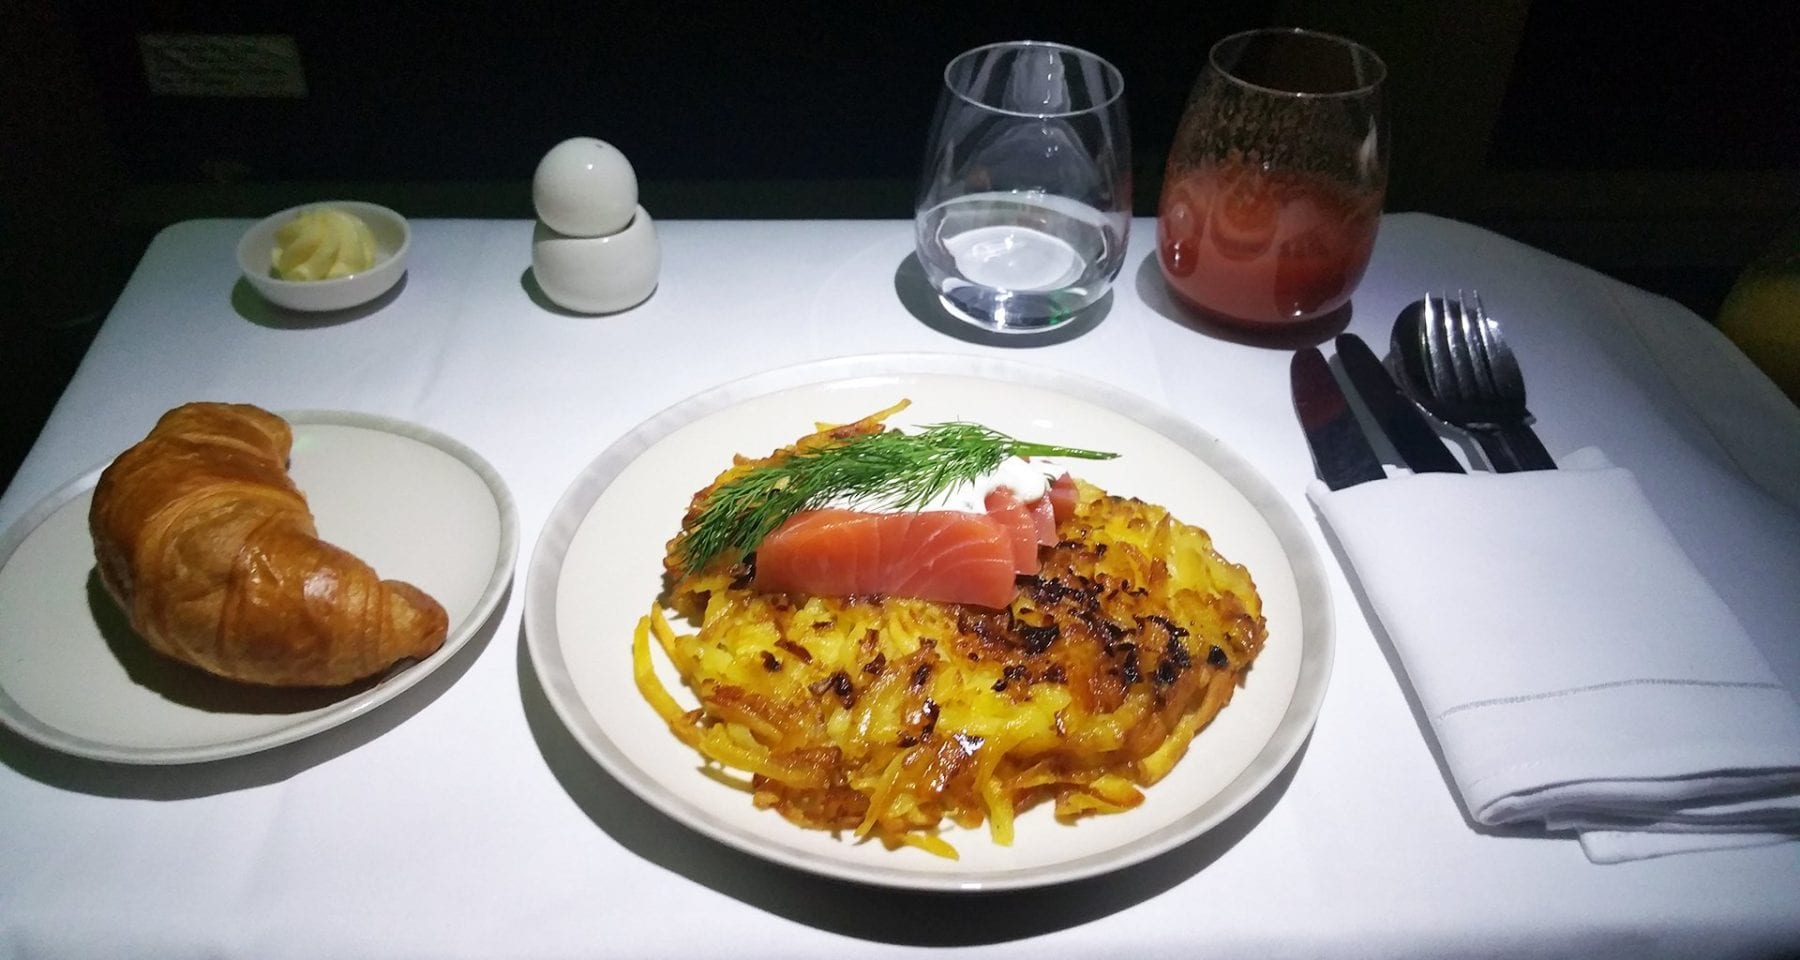 Singapore Airlines Rosti potato dish from Zurich to Singapore in Business Class